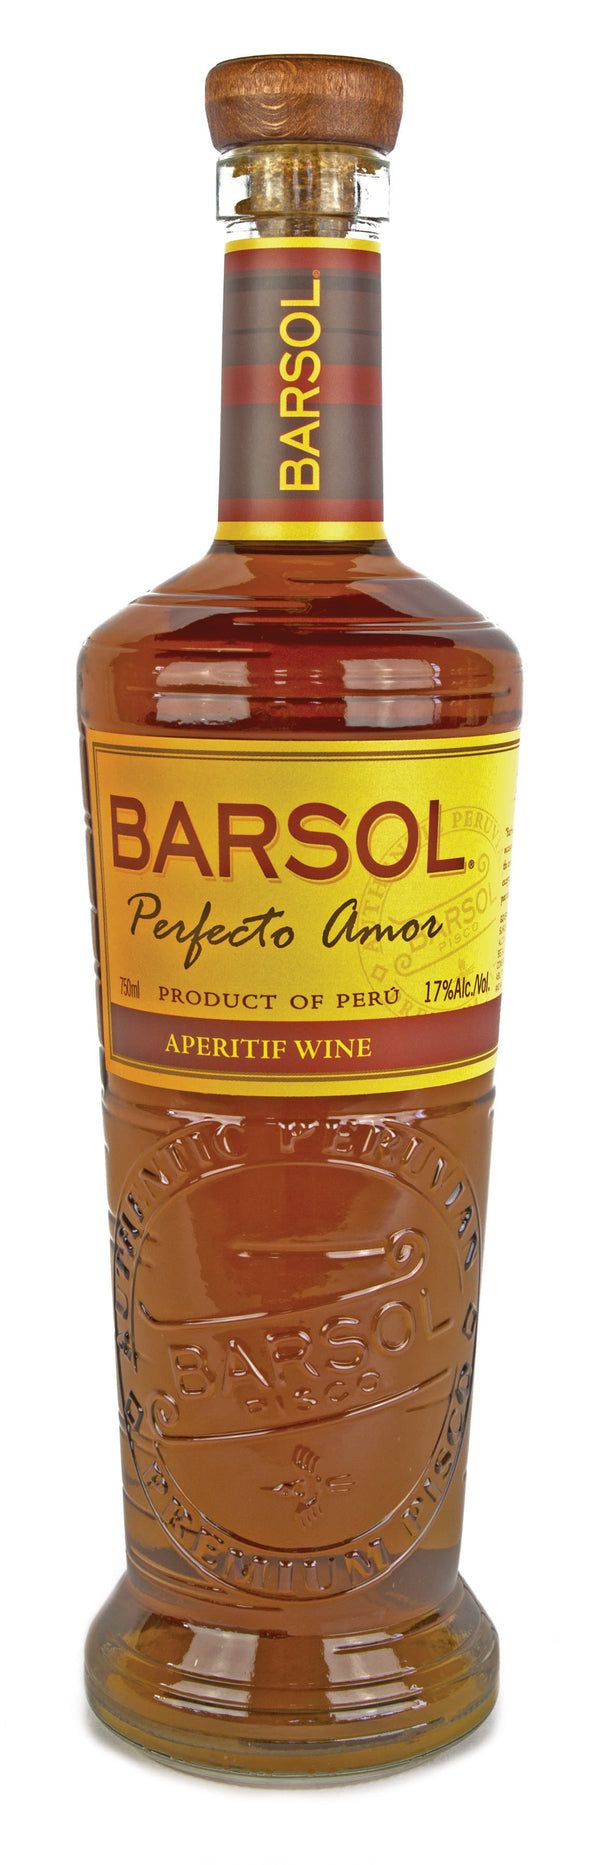 Barsol Perfecto Amor - Available at Wooden Cork